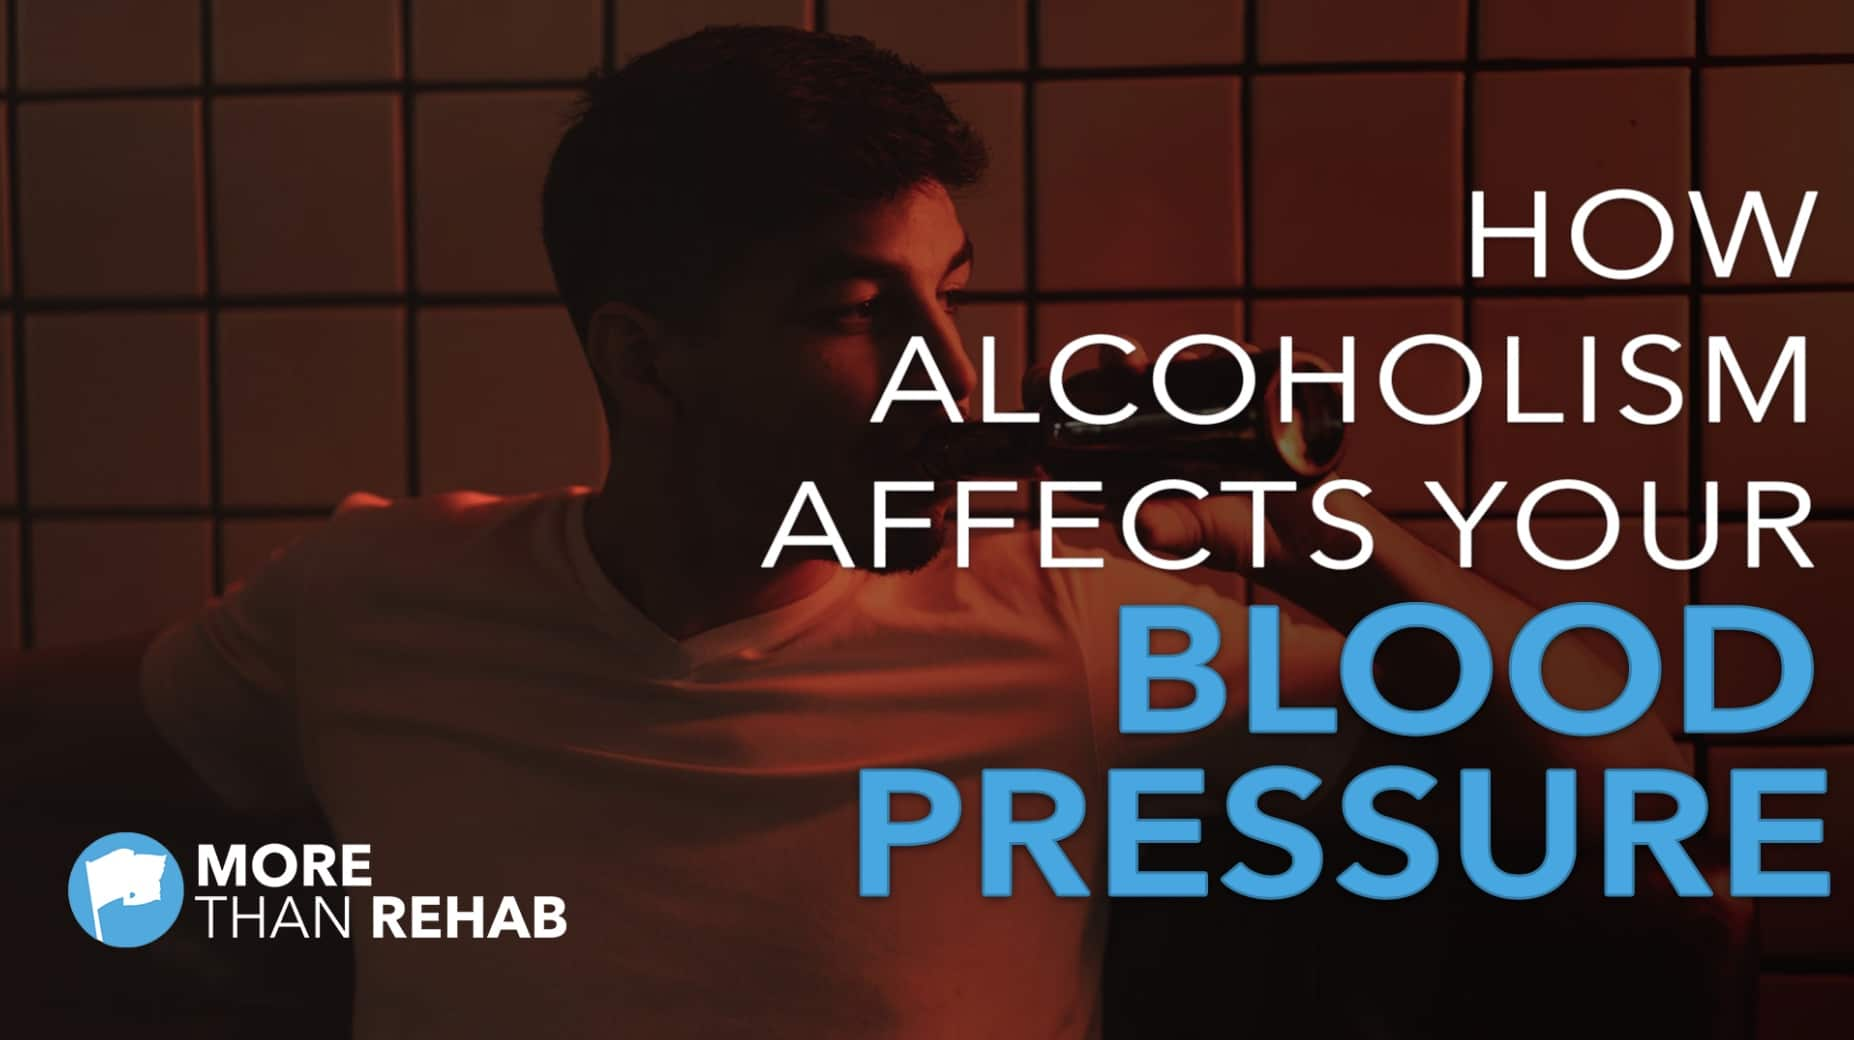 how-alcoholism-can-make-your-blood-pressure-worse-addiction-treatment-Houston-Texas